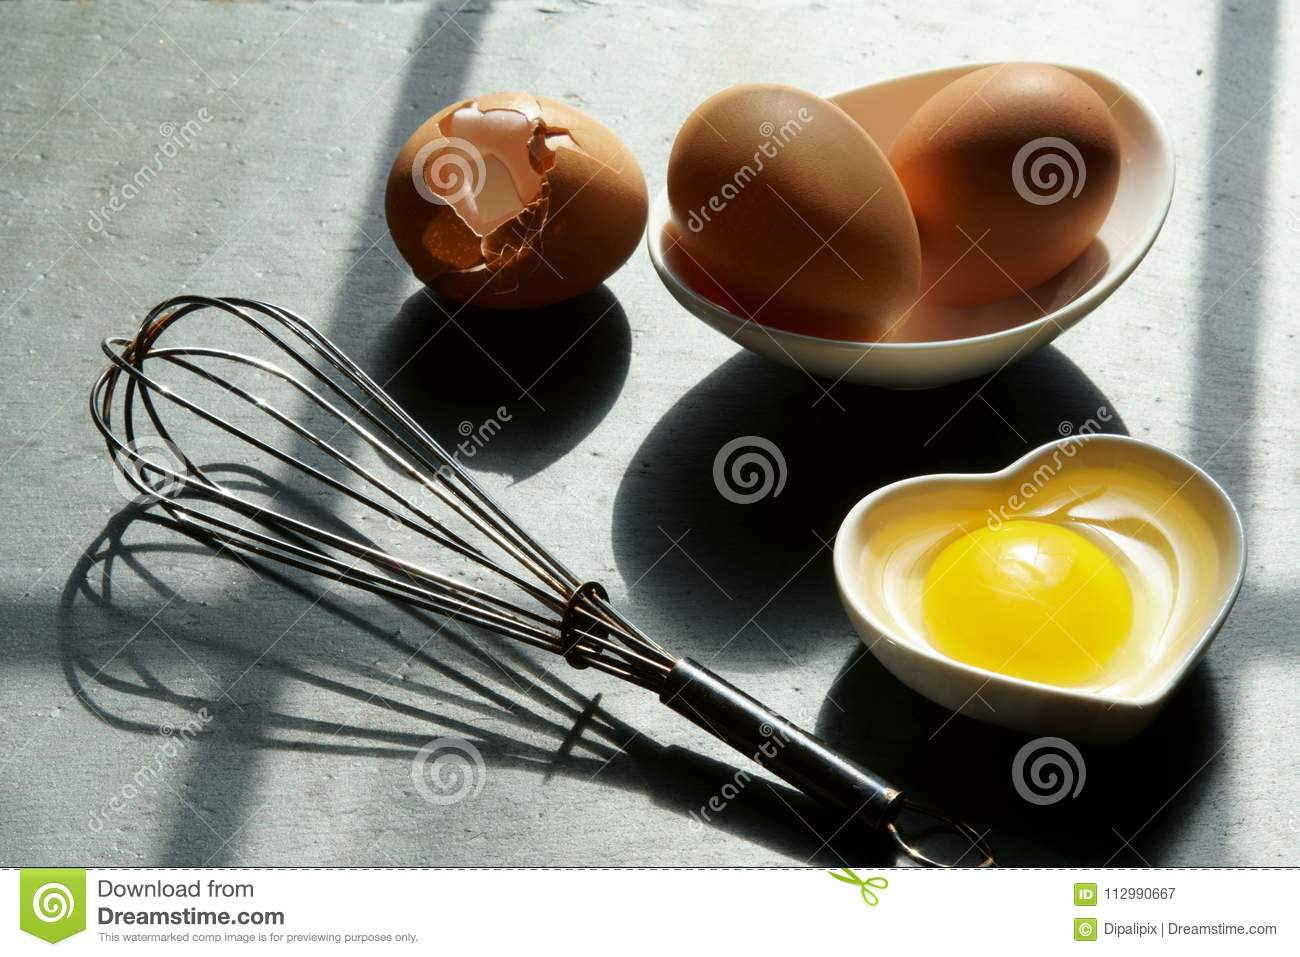 Brown eggs with a broken shell